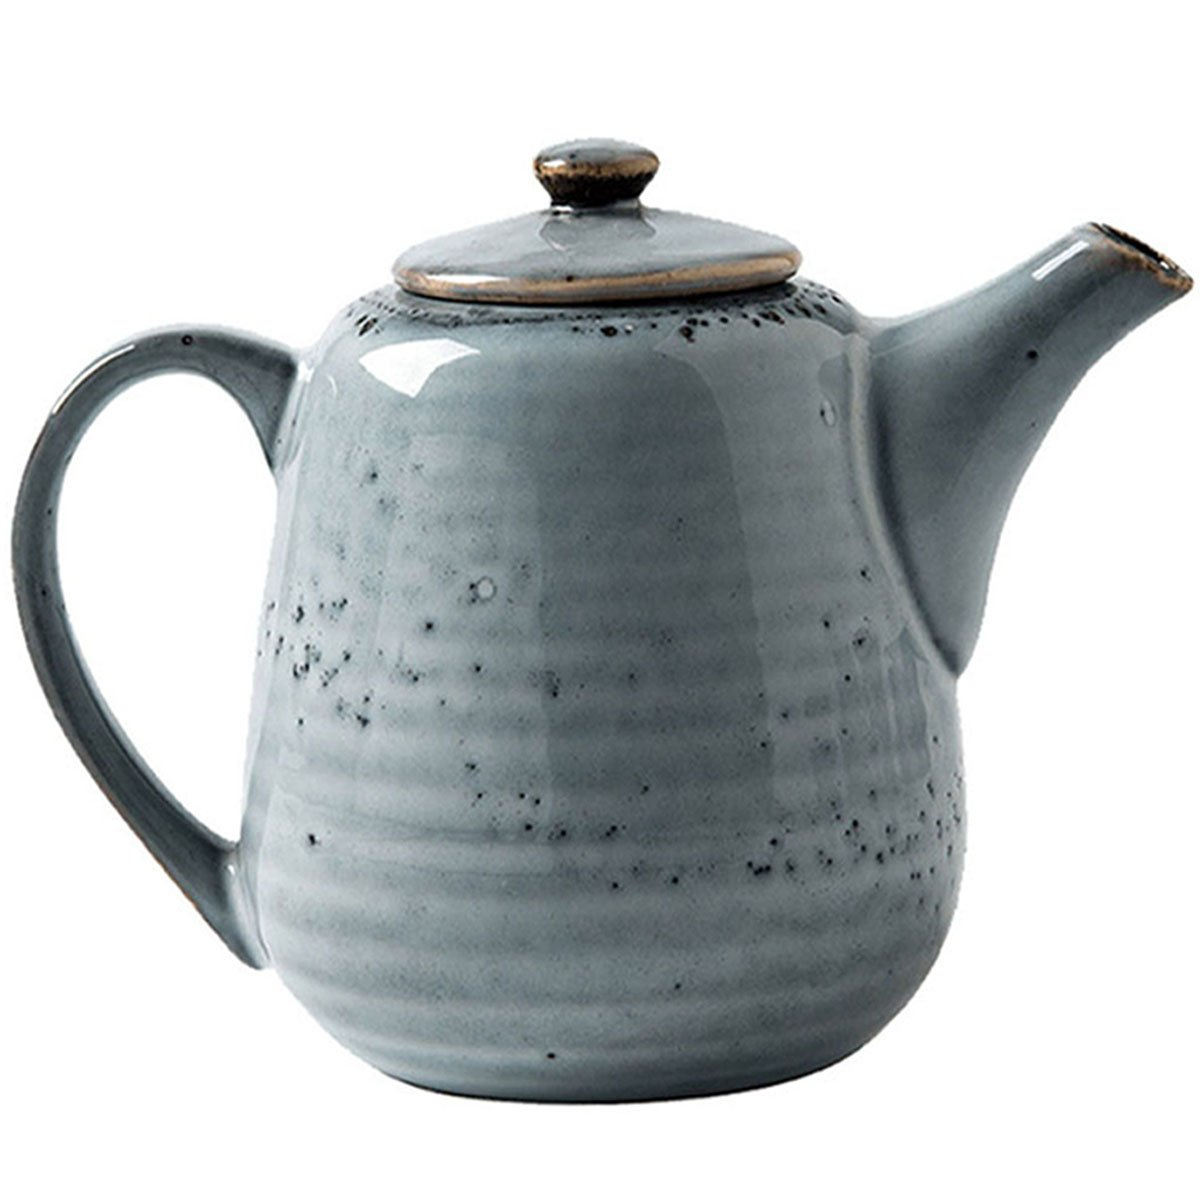 Wabol.T Vintage Styling Ceramic Teapot Coffee Serving Kettle with Built-in Strainer Holes